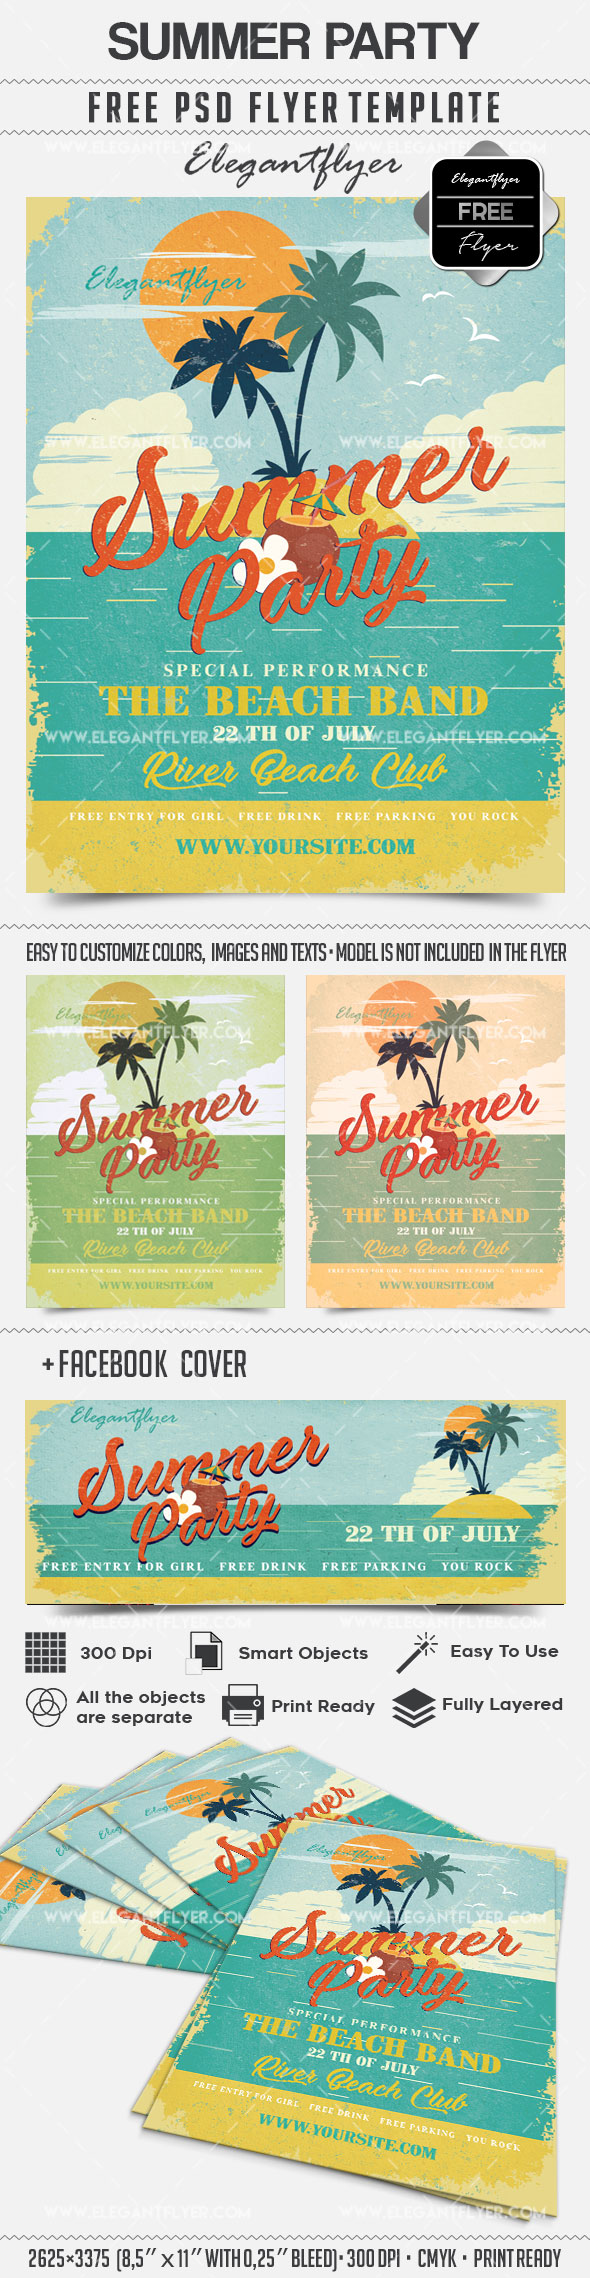 Summer Party- Free Flyer PSD Template